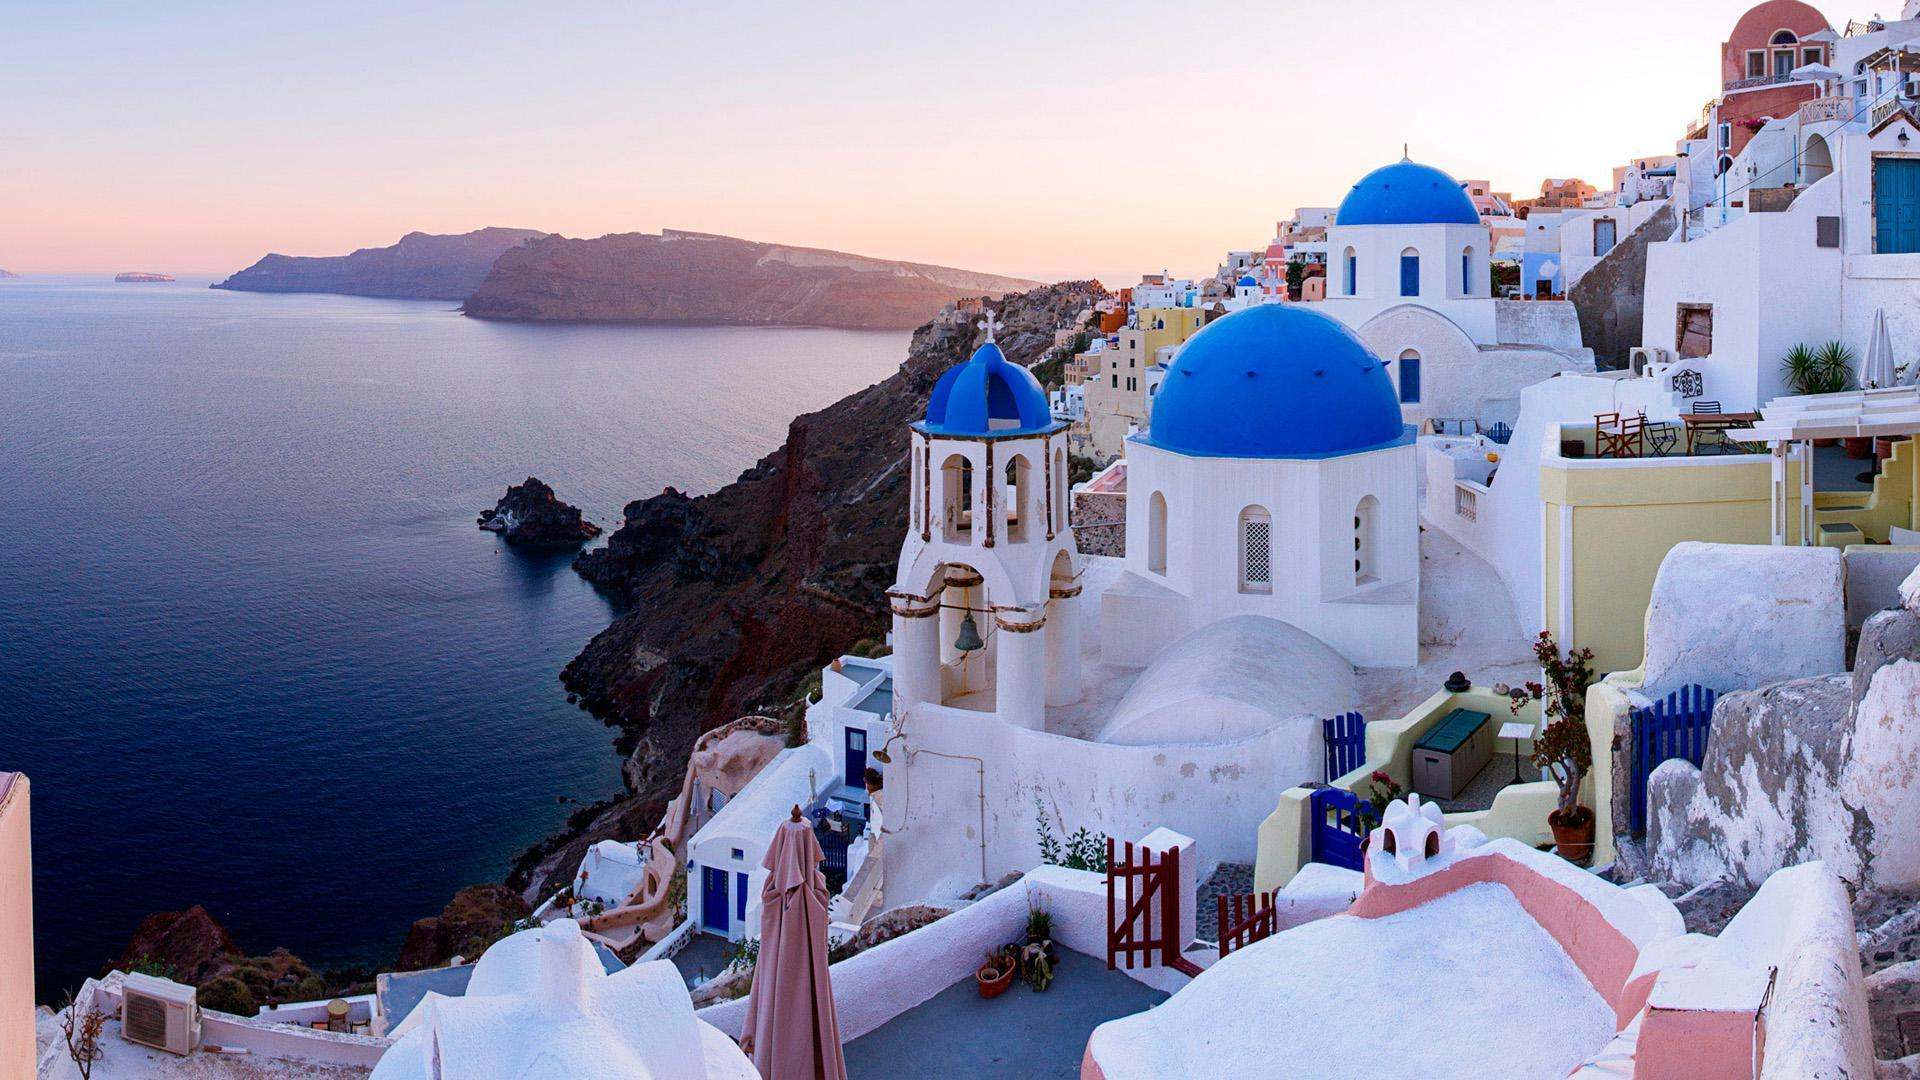 Town Oia, Santorini Island, Greece, HD Wallpapers